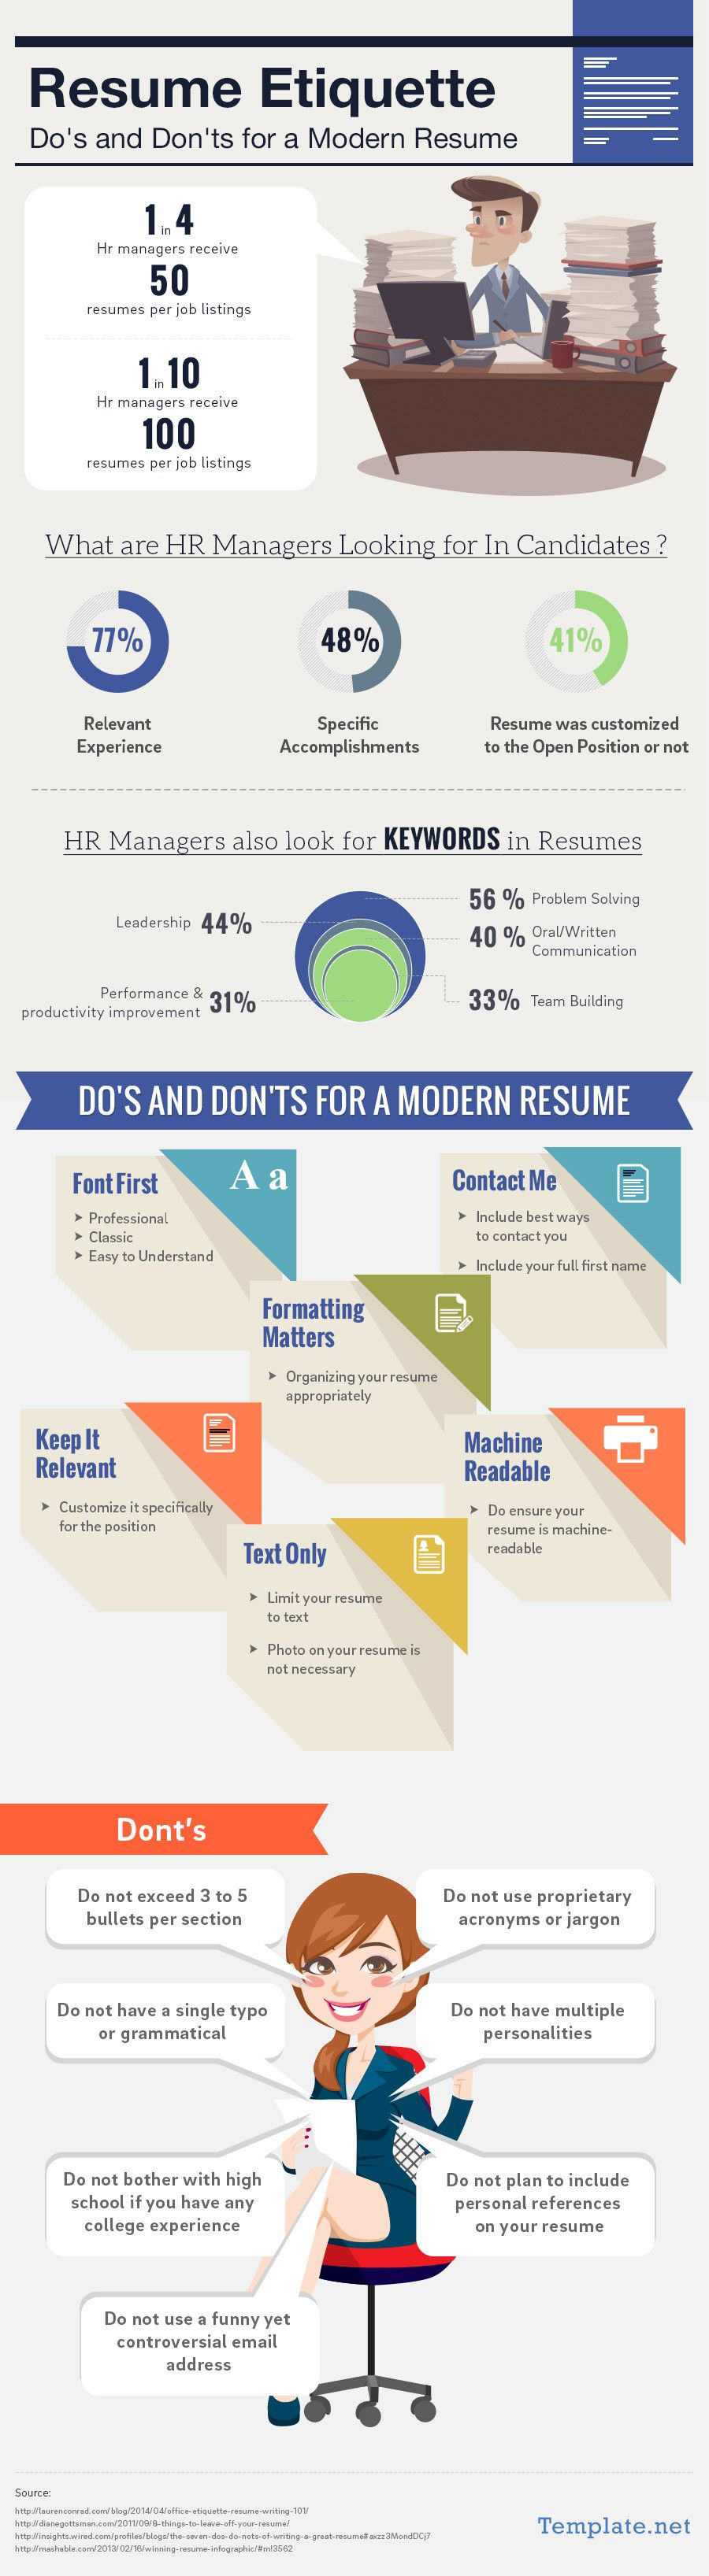 The Modern Resume Resume Etiquette Do's And Don'ts For A Modern Resume #infographic .